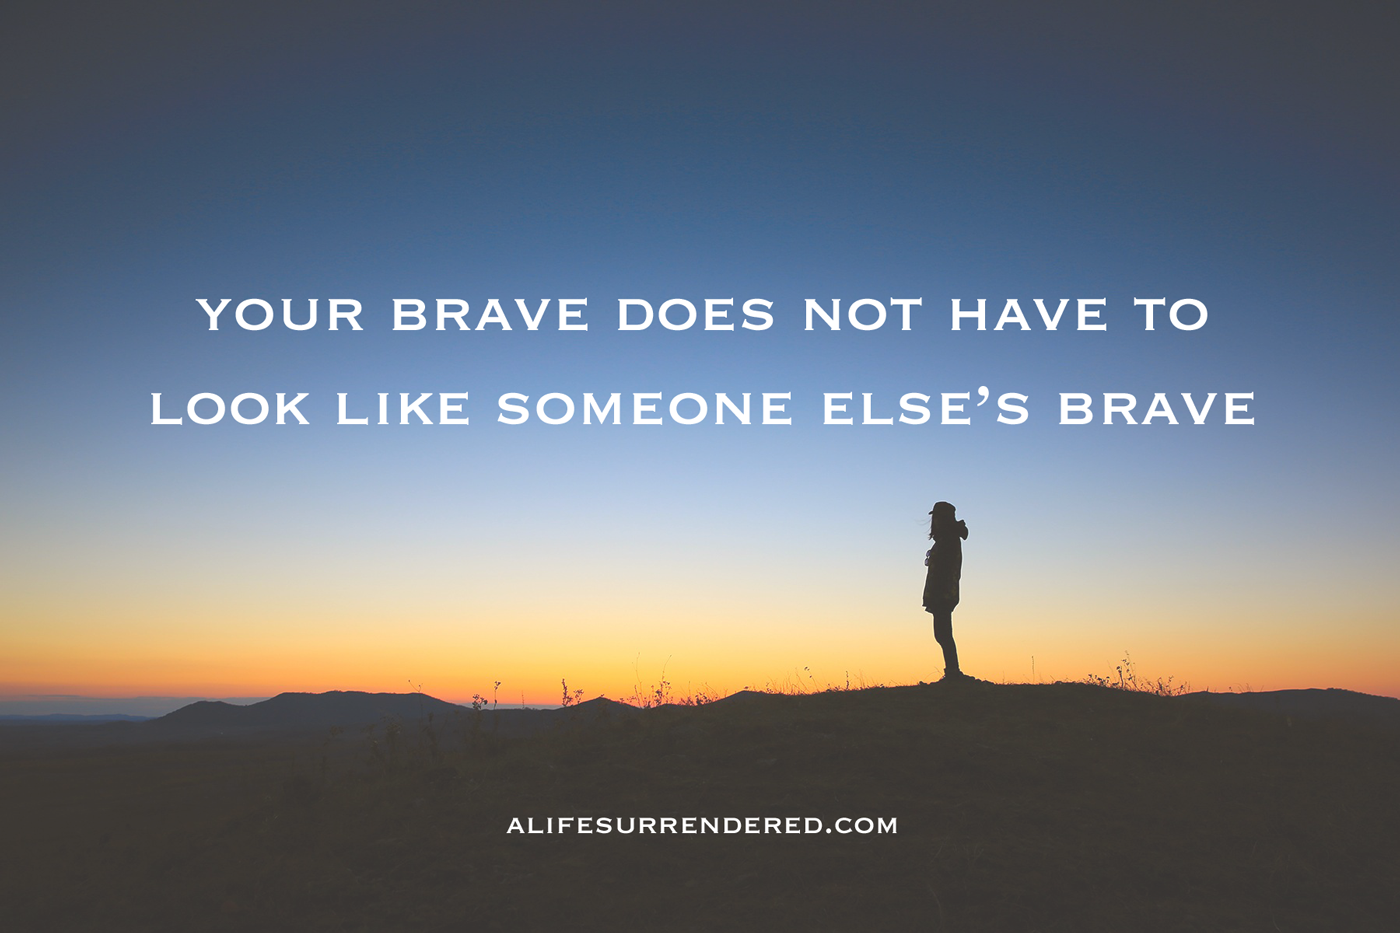 Your Brave Does Not Have to Look Like Someone Else's Brave